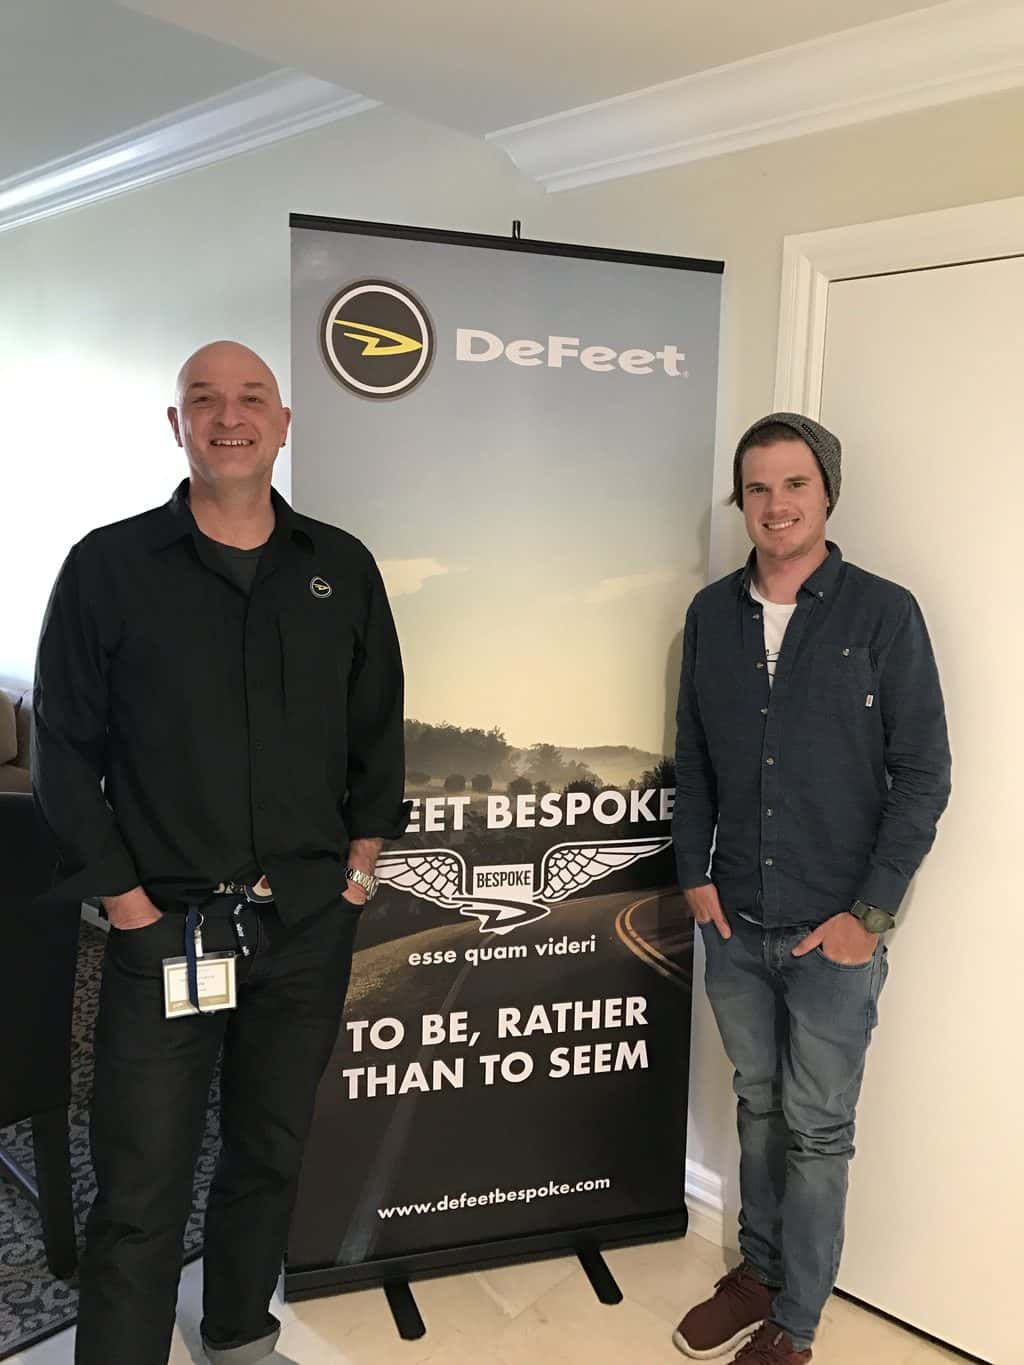 DeFeet are very excited with their new platform of using a crowd platform process to introduce new products to the public.